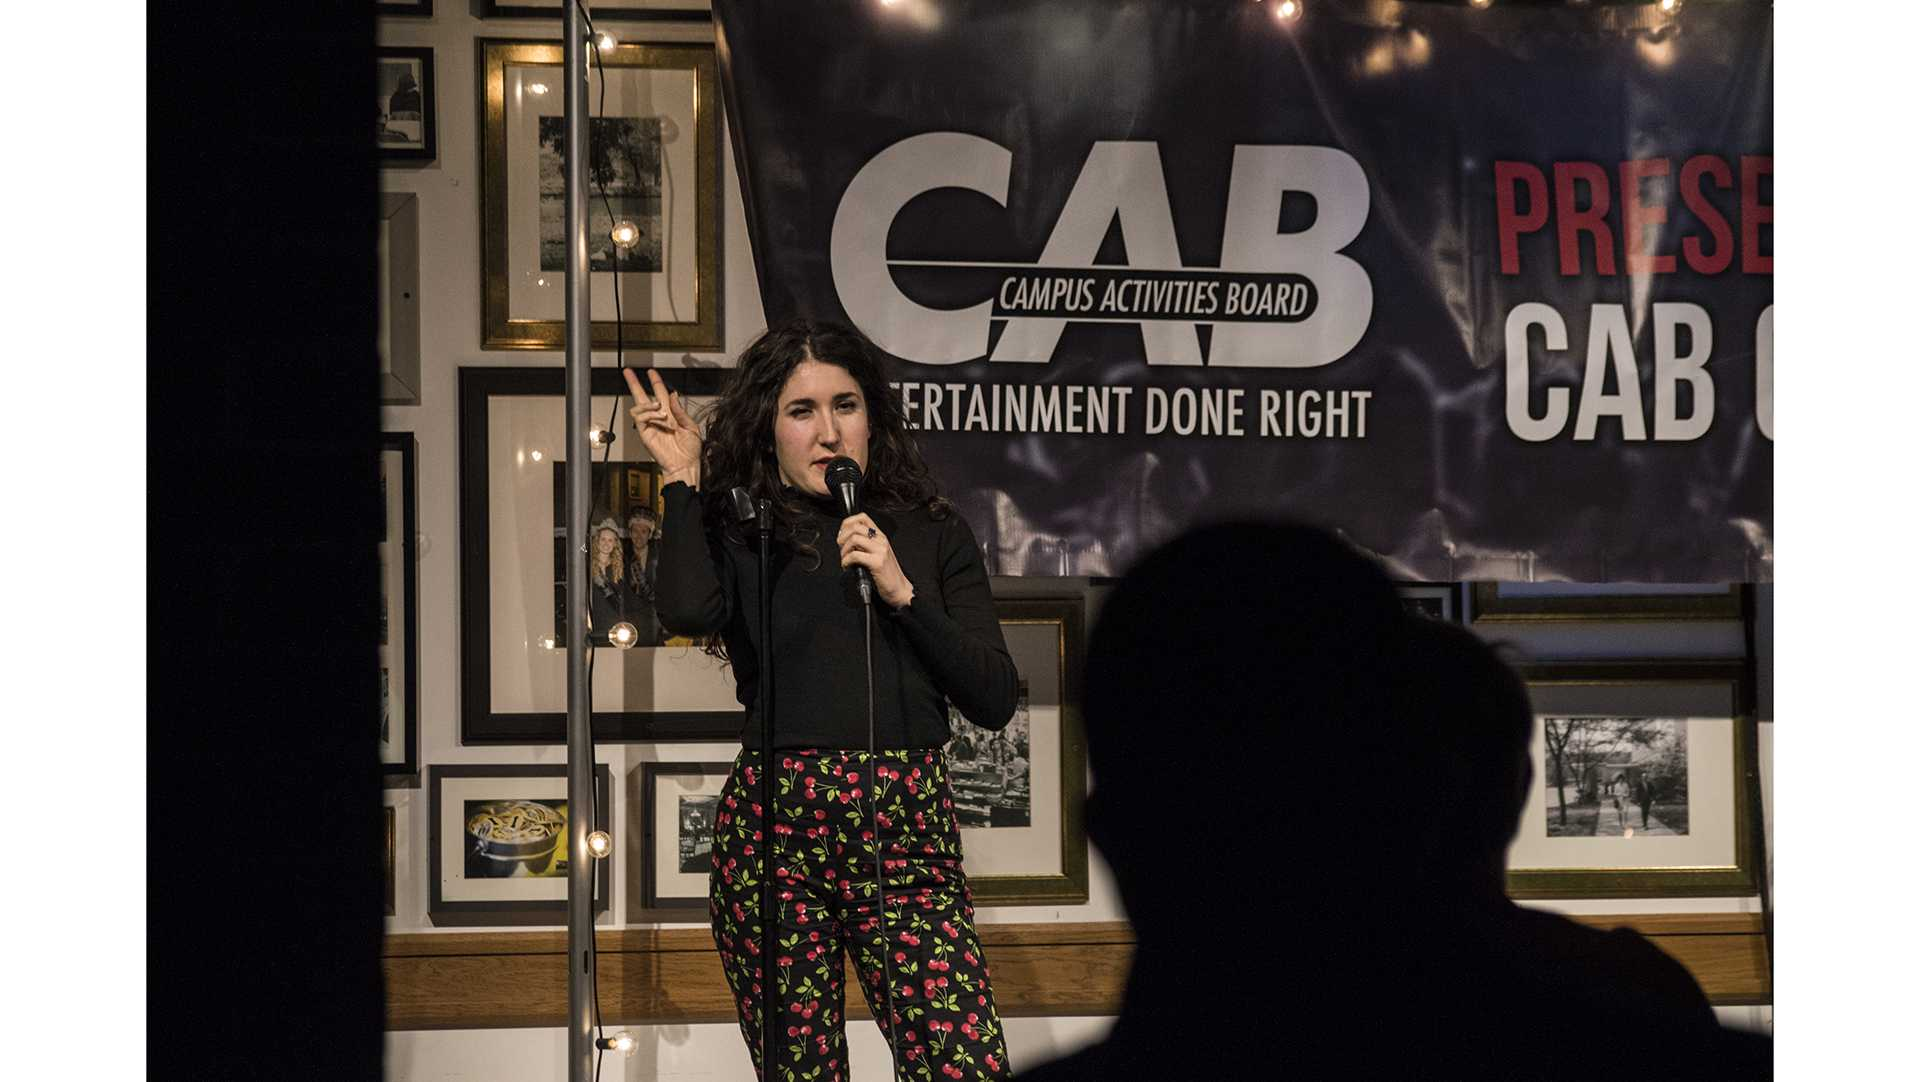 Comedian Kate Berlant performans experimental comedy for UI students